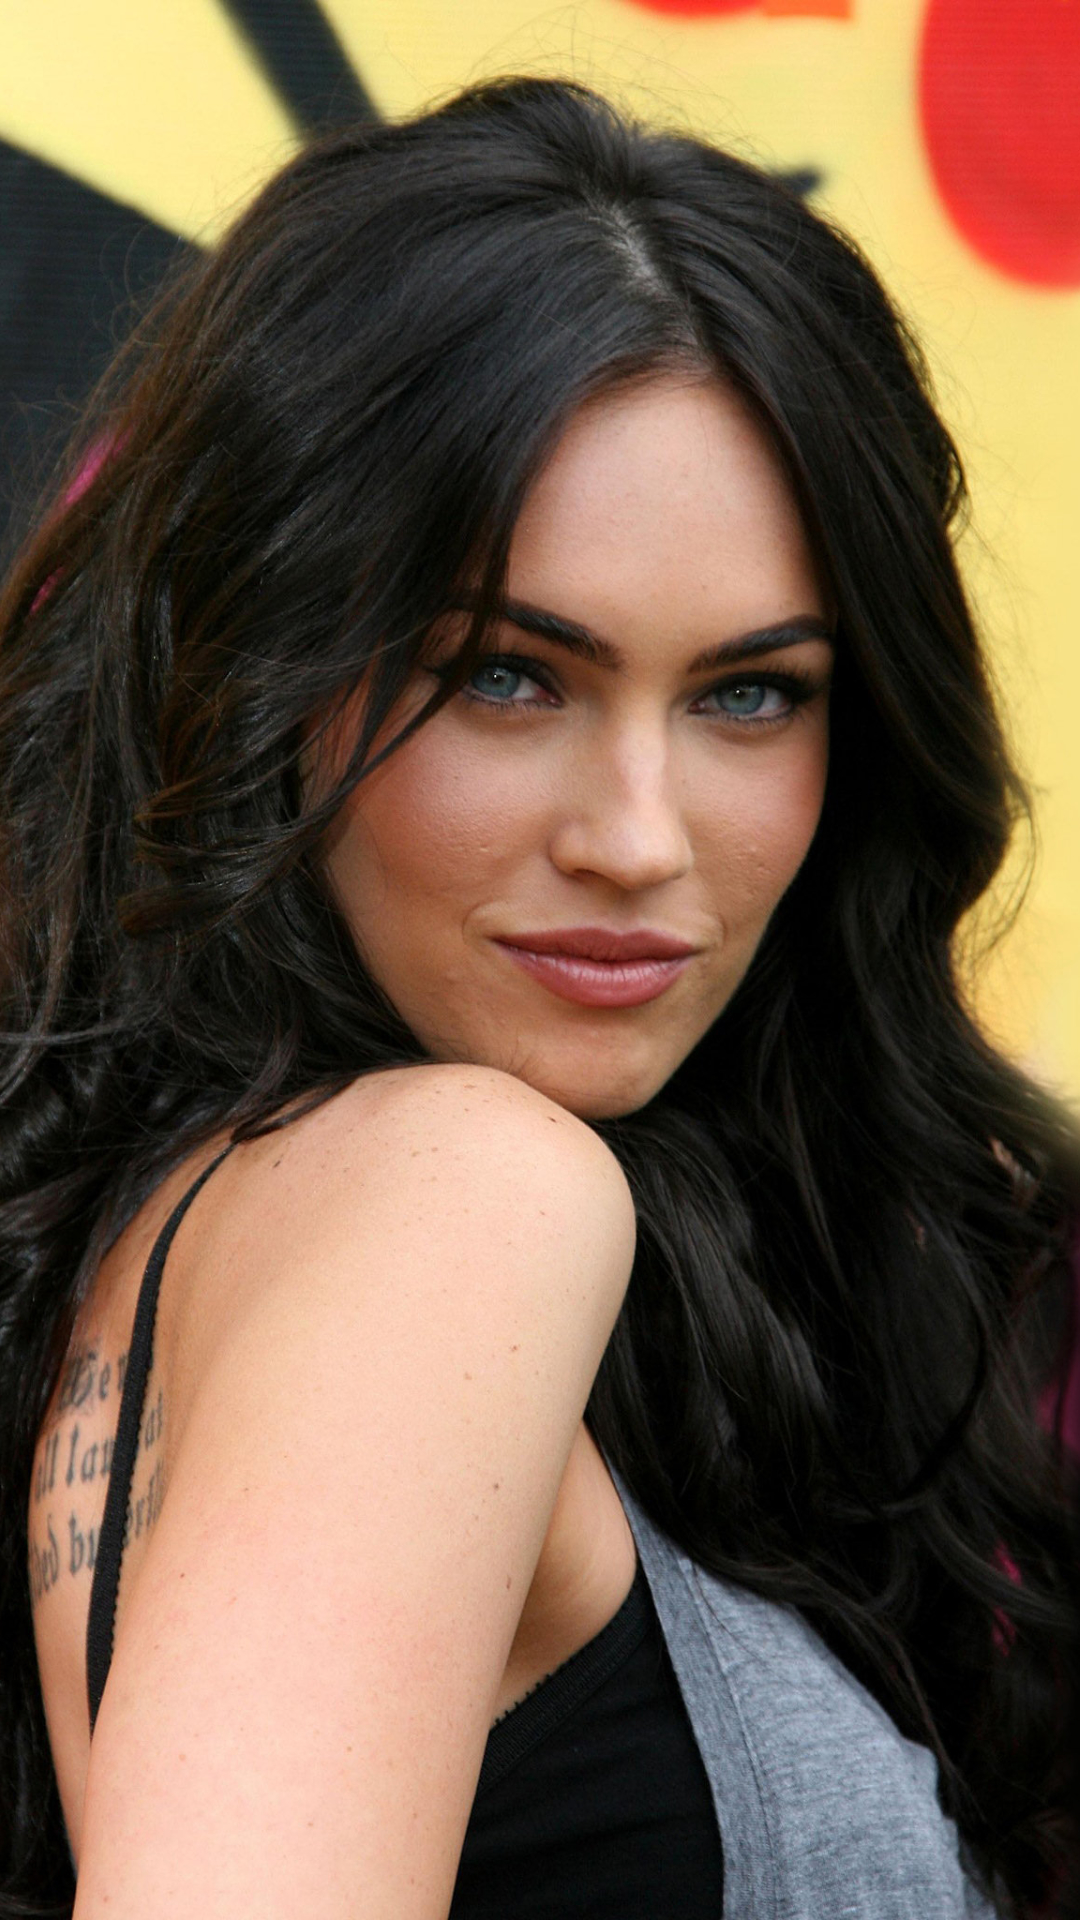 celebrity/megan fox (1080x1920) wallpaper id: 90772 - mobile abyss